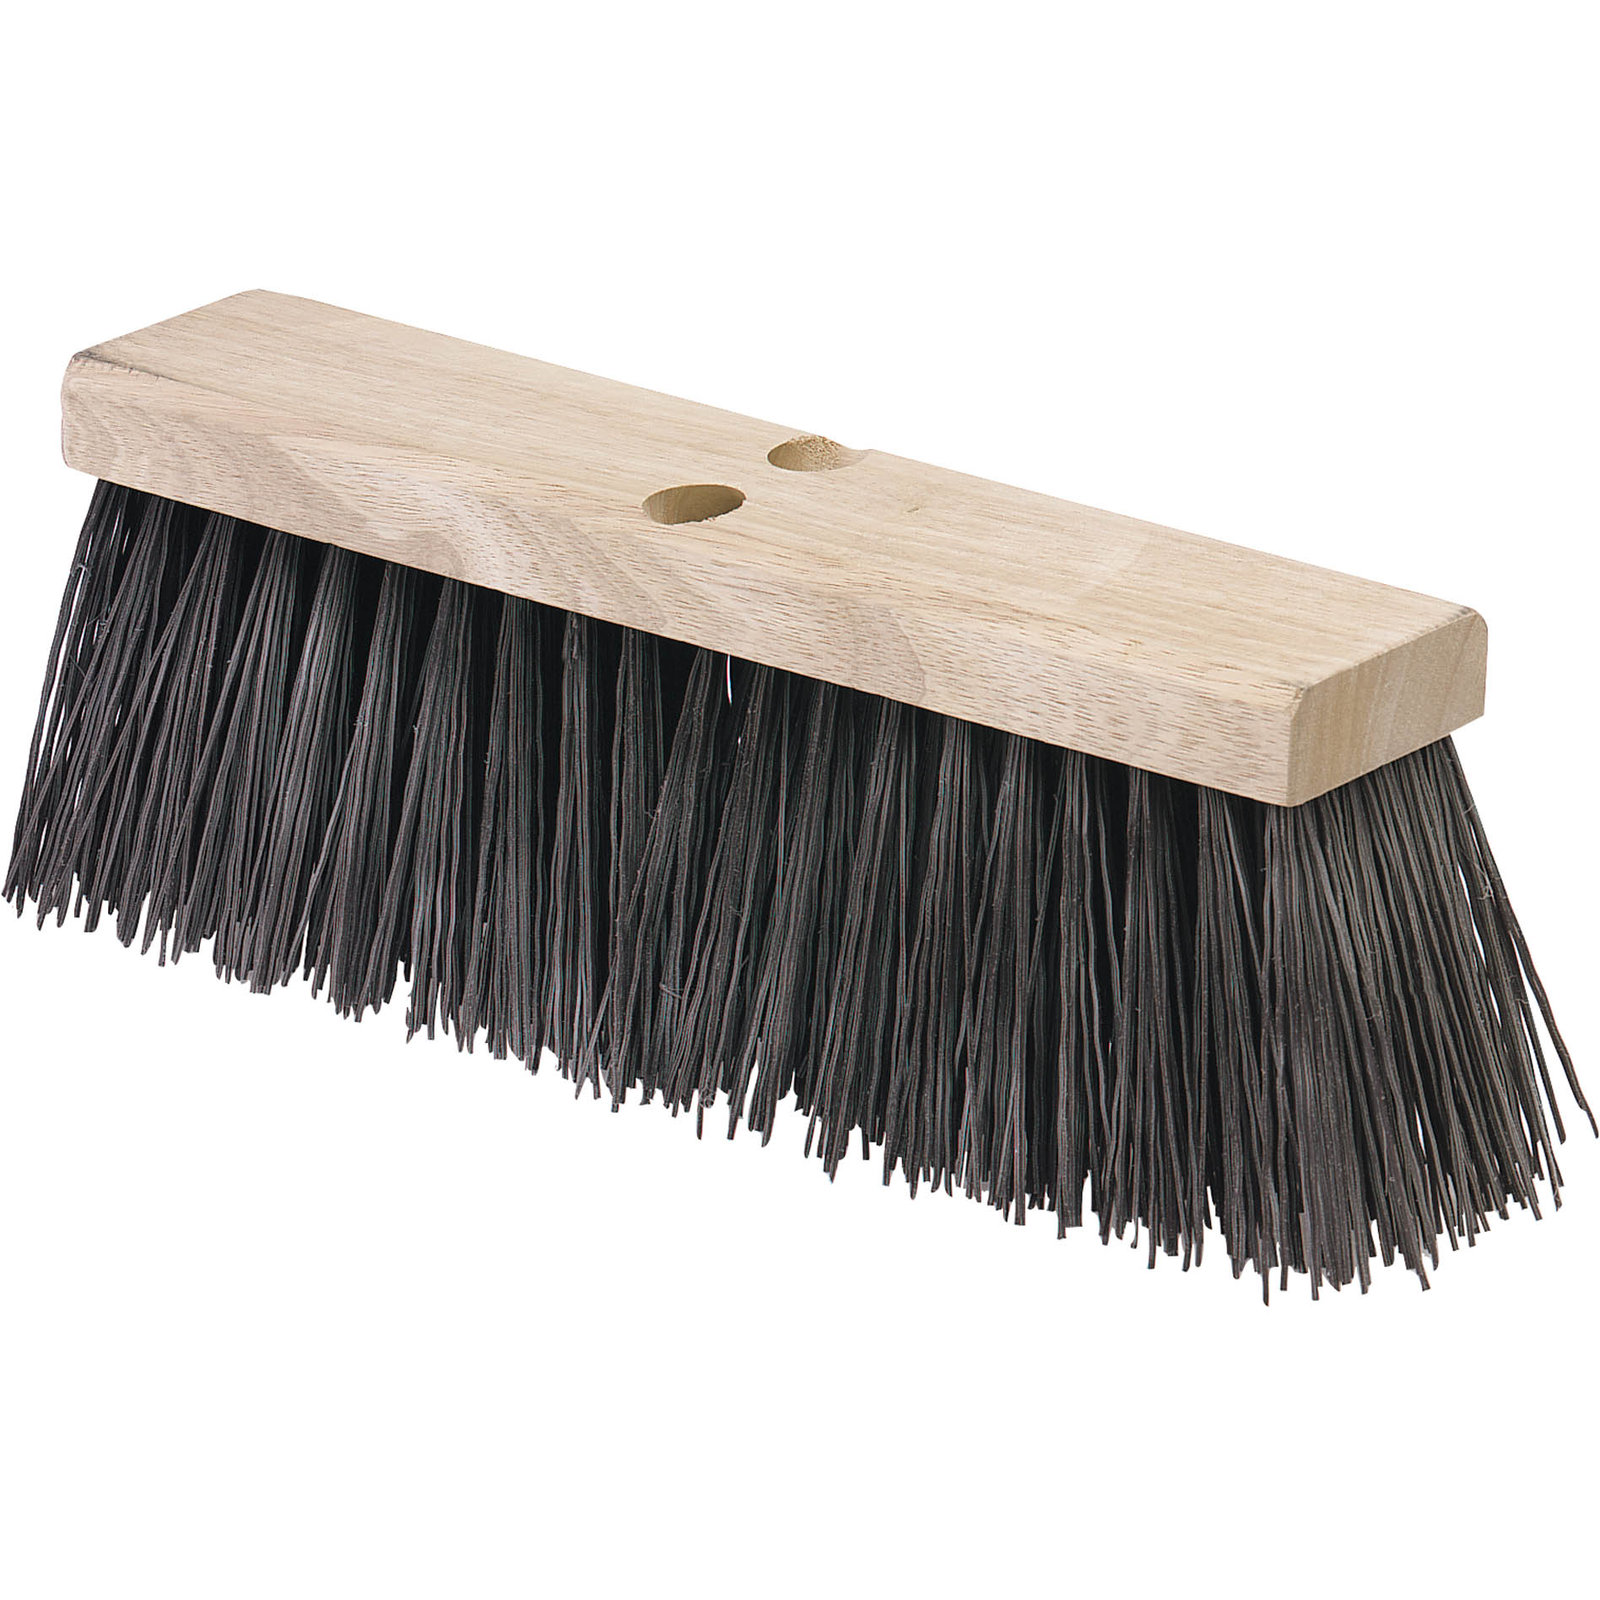 "BROOM 18"" HEAVY POLYPROPYLENE 5 1/8 TRIM"